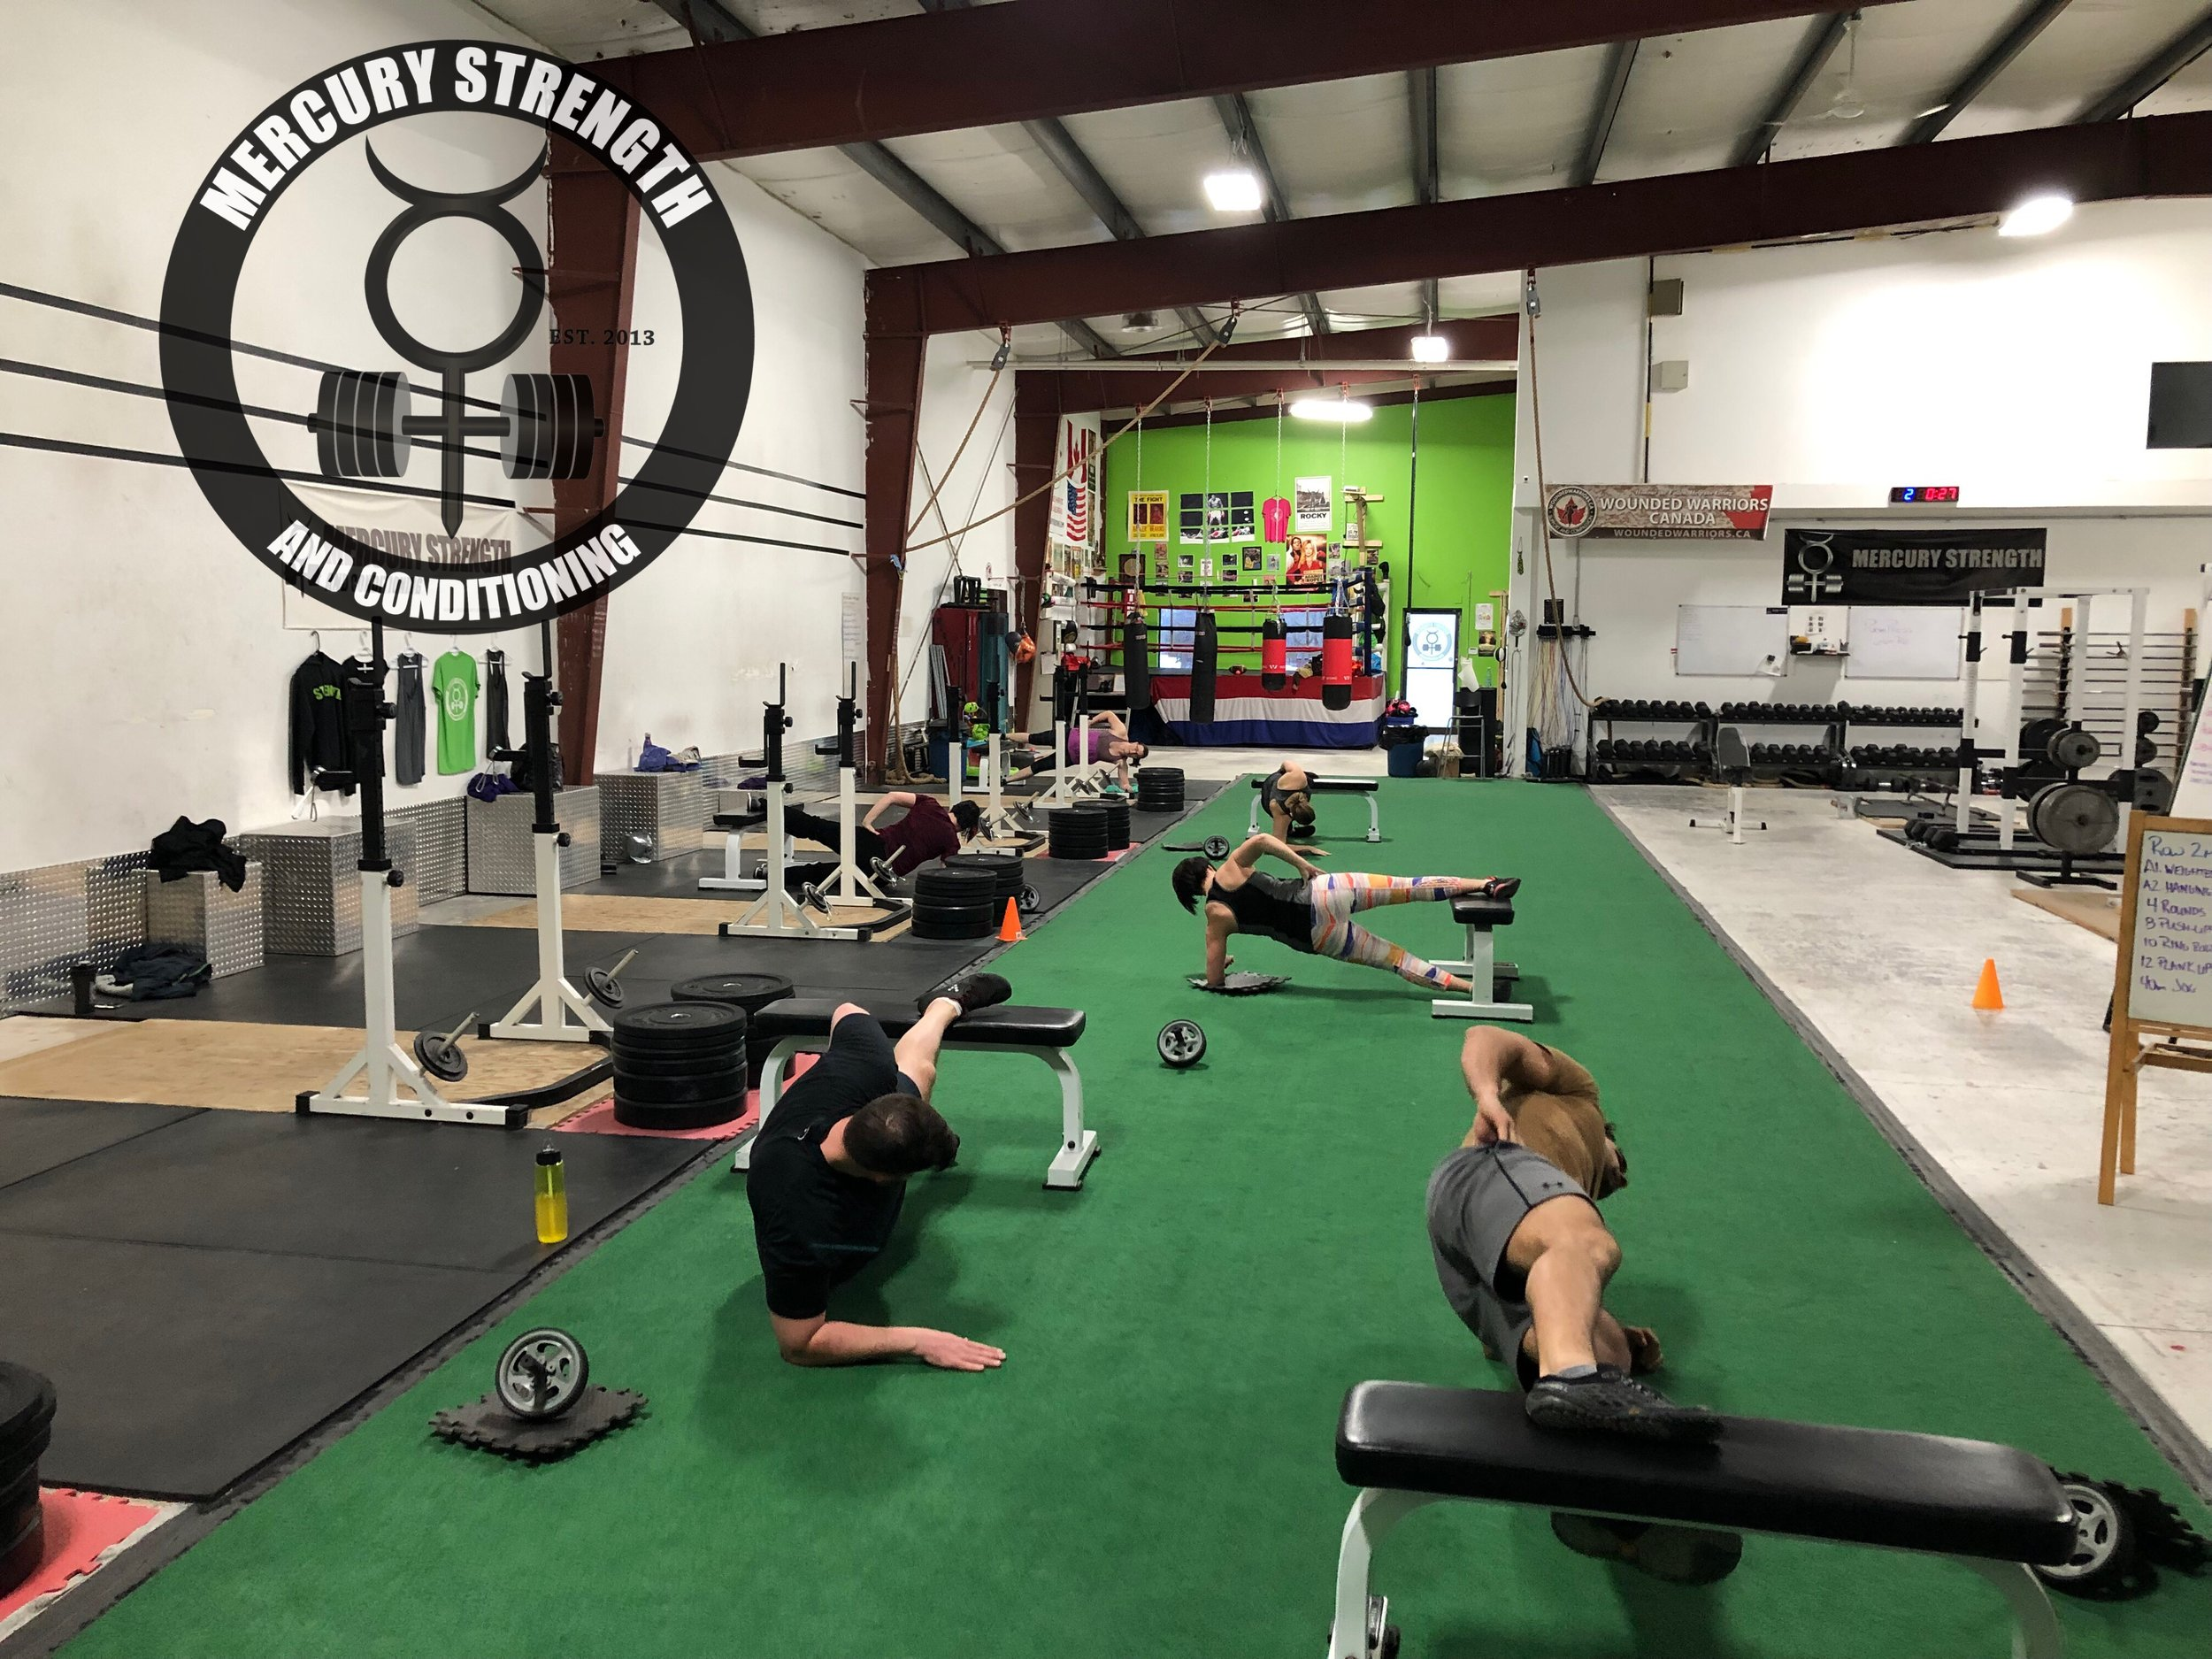 Gym-powerlifting-Olympic lifting-fitness-personal training-training-bootcamp-crossfit-kingston-kingston gym-kids-mercury-strength-conditioning-athlete-Copenhagen